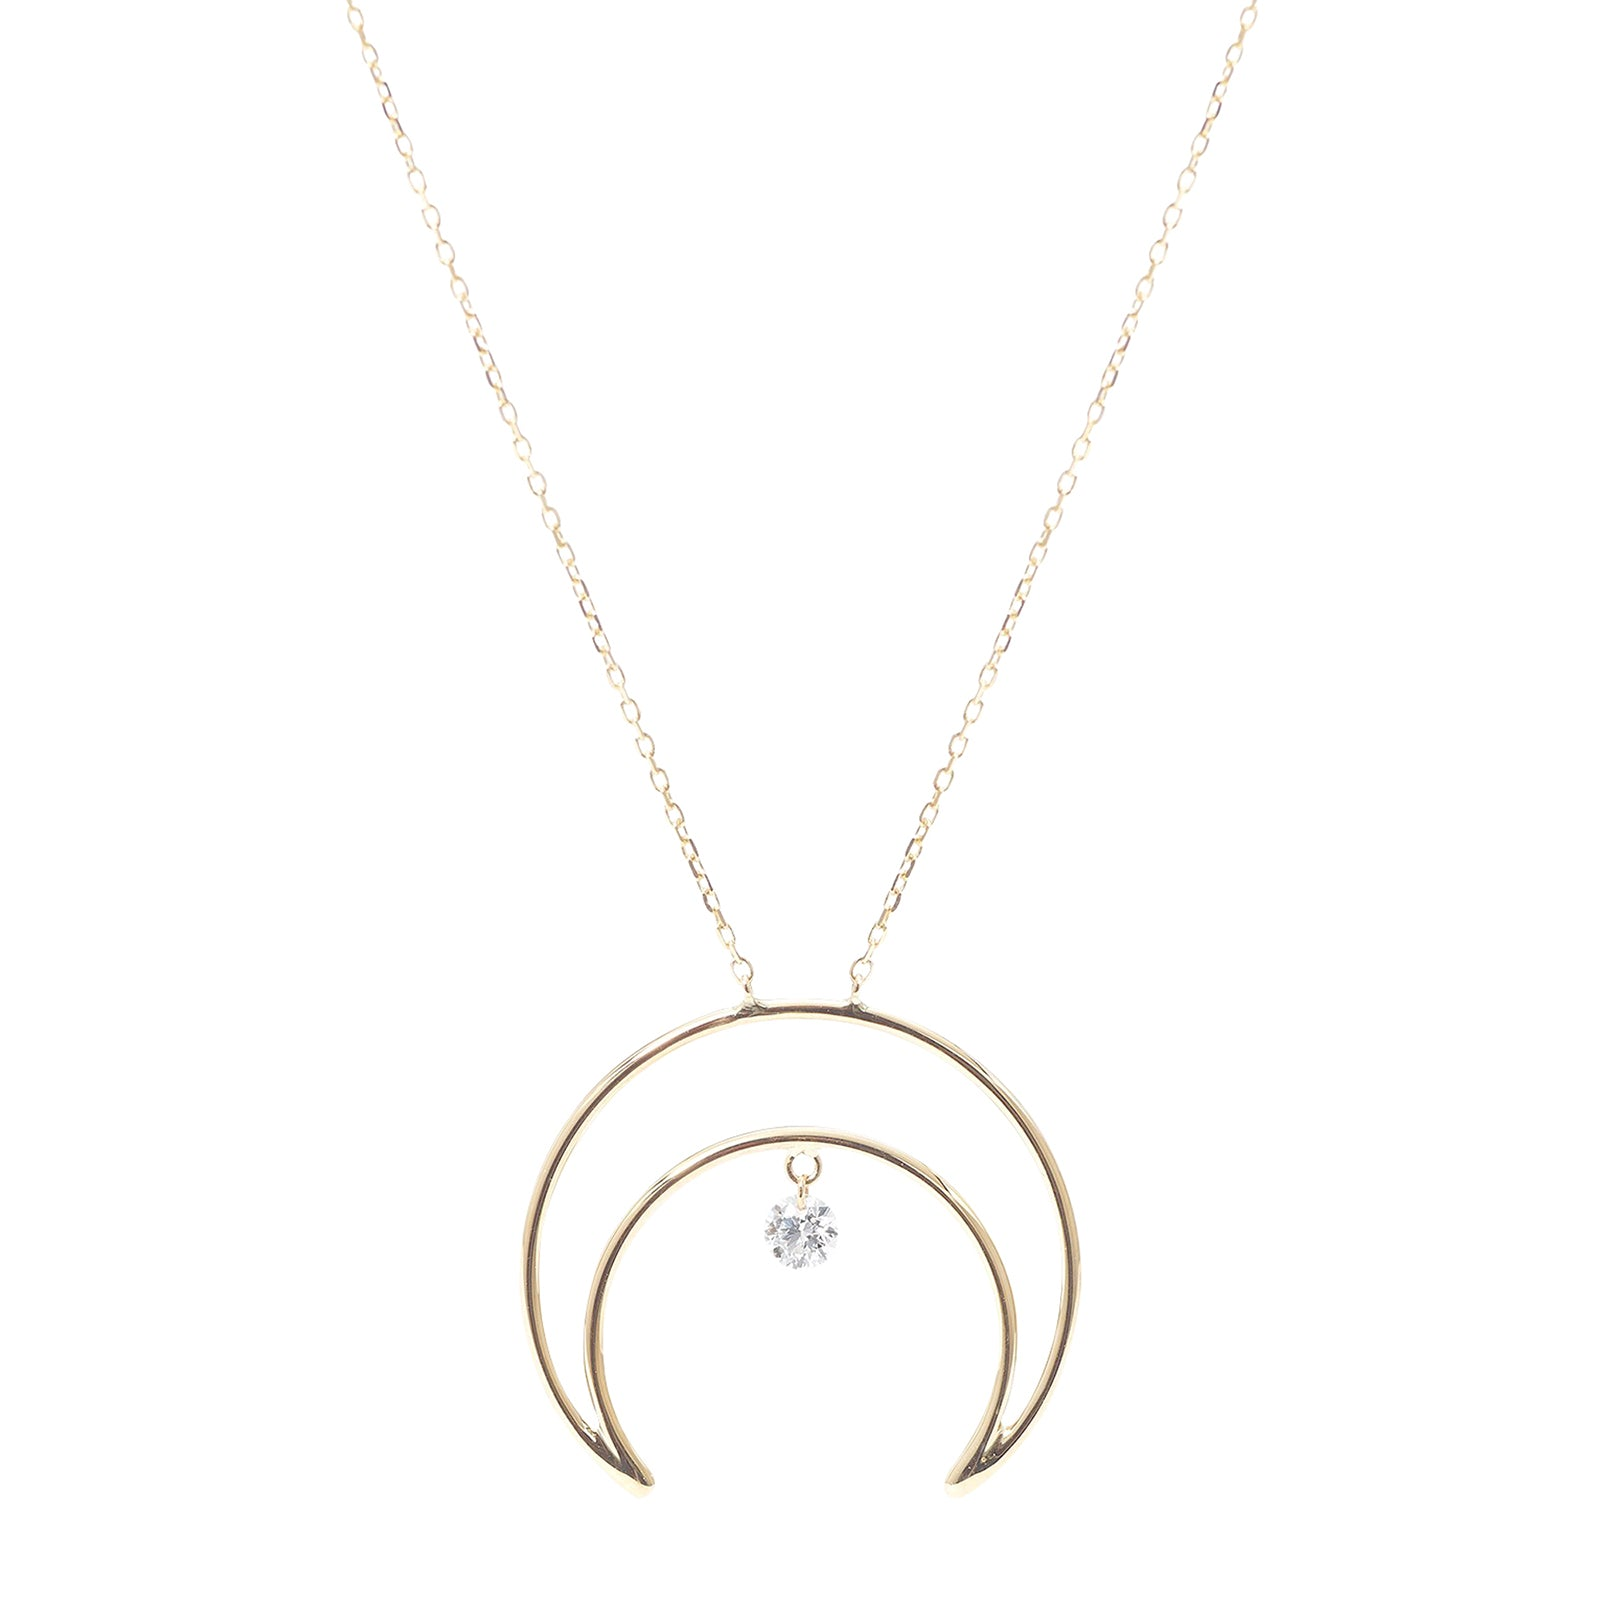 Persée Paris Moon Diamond Necklace - Necklaces - Broken English Jewelry